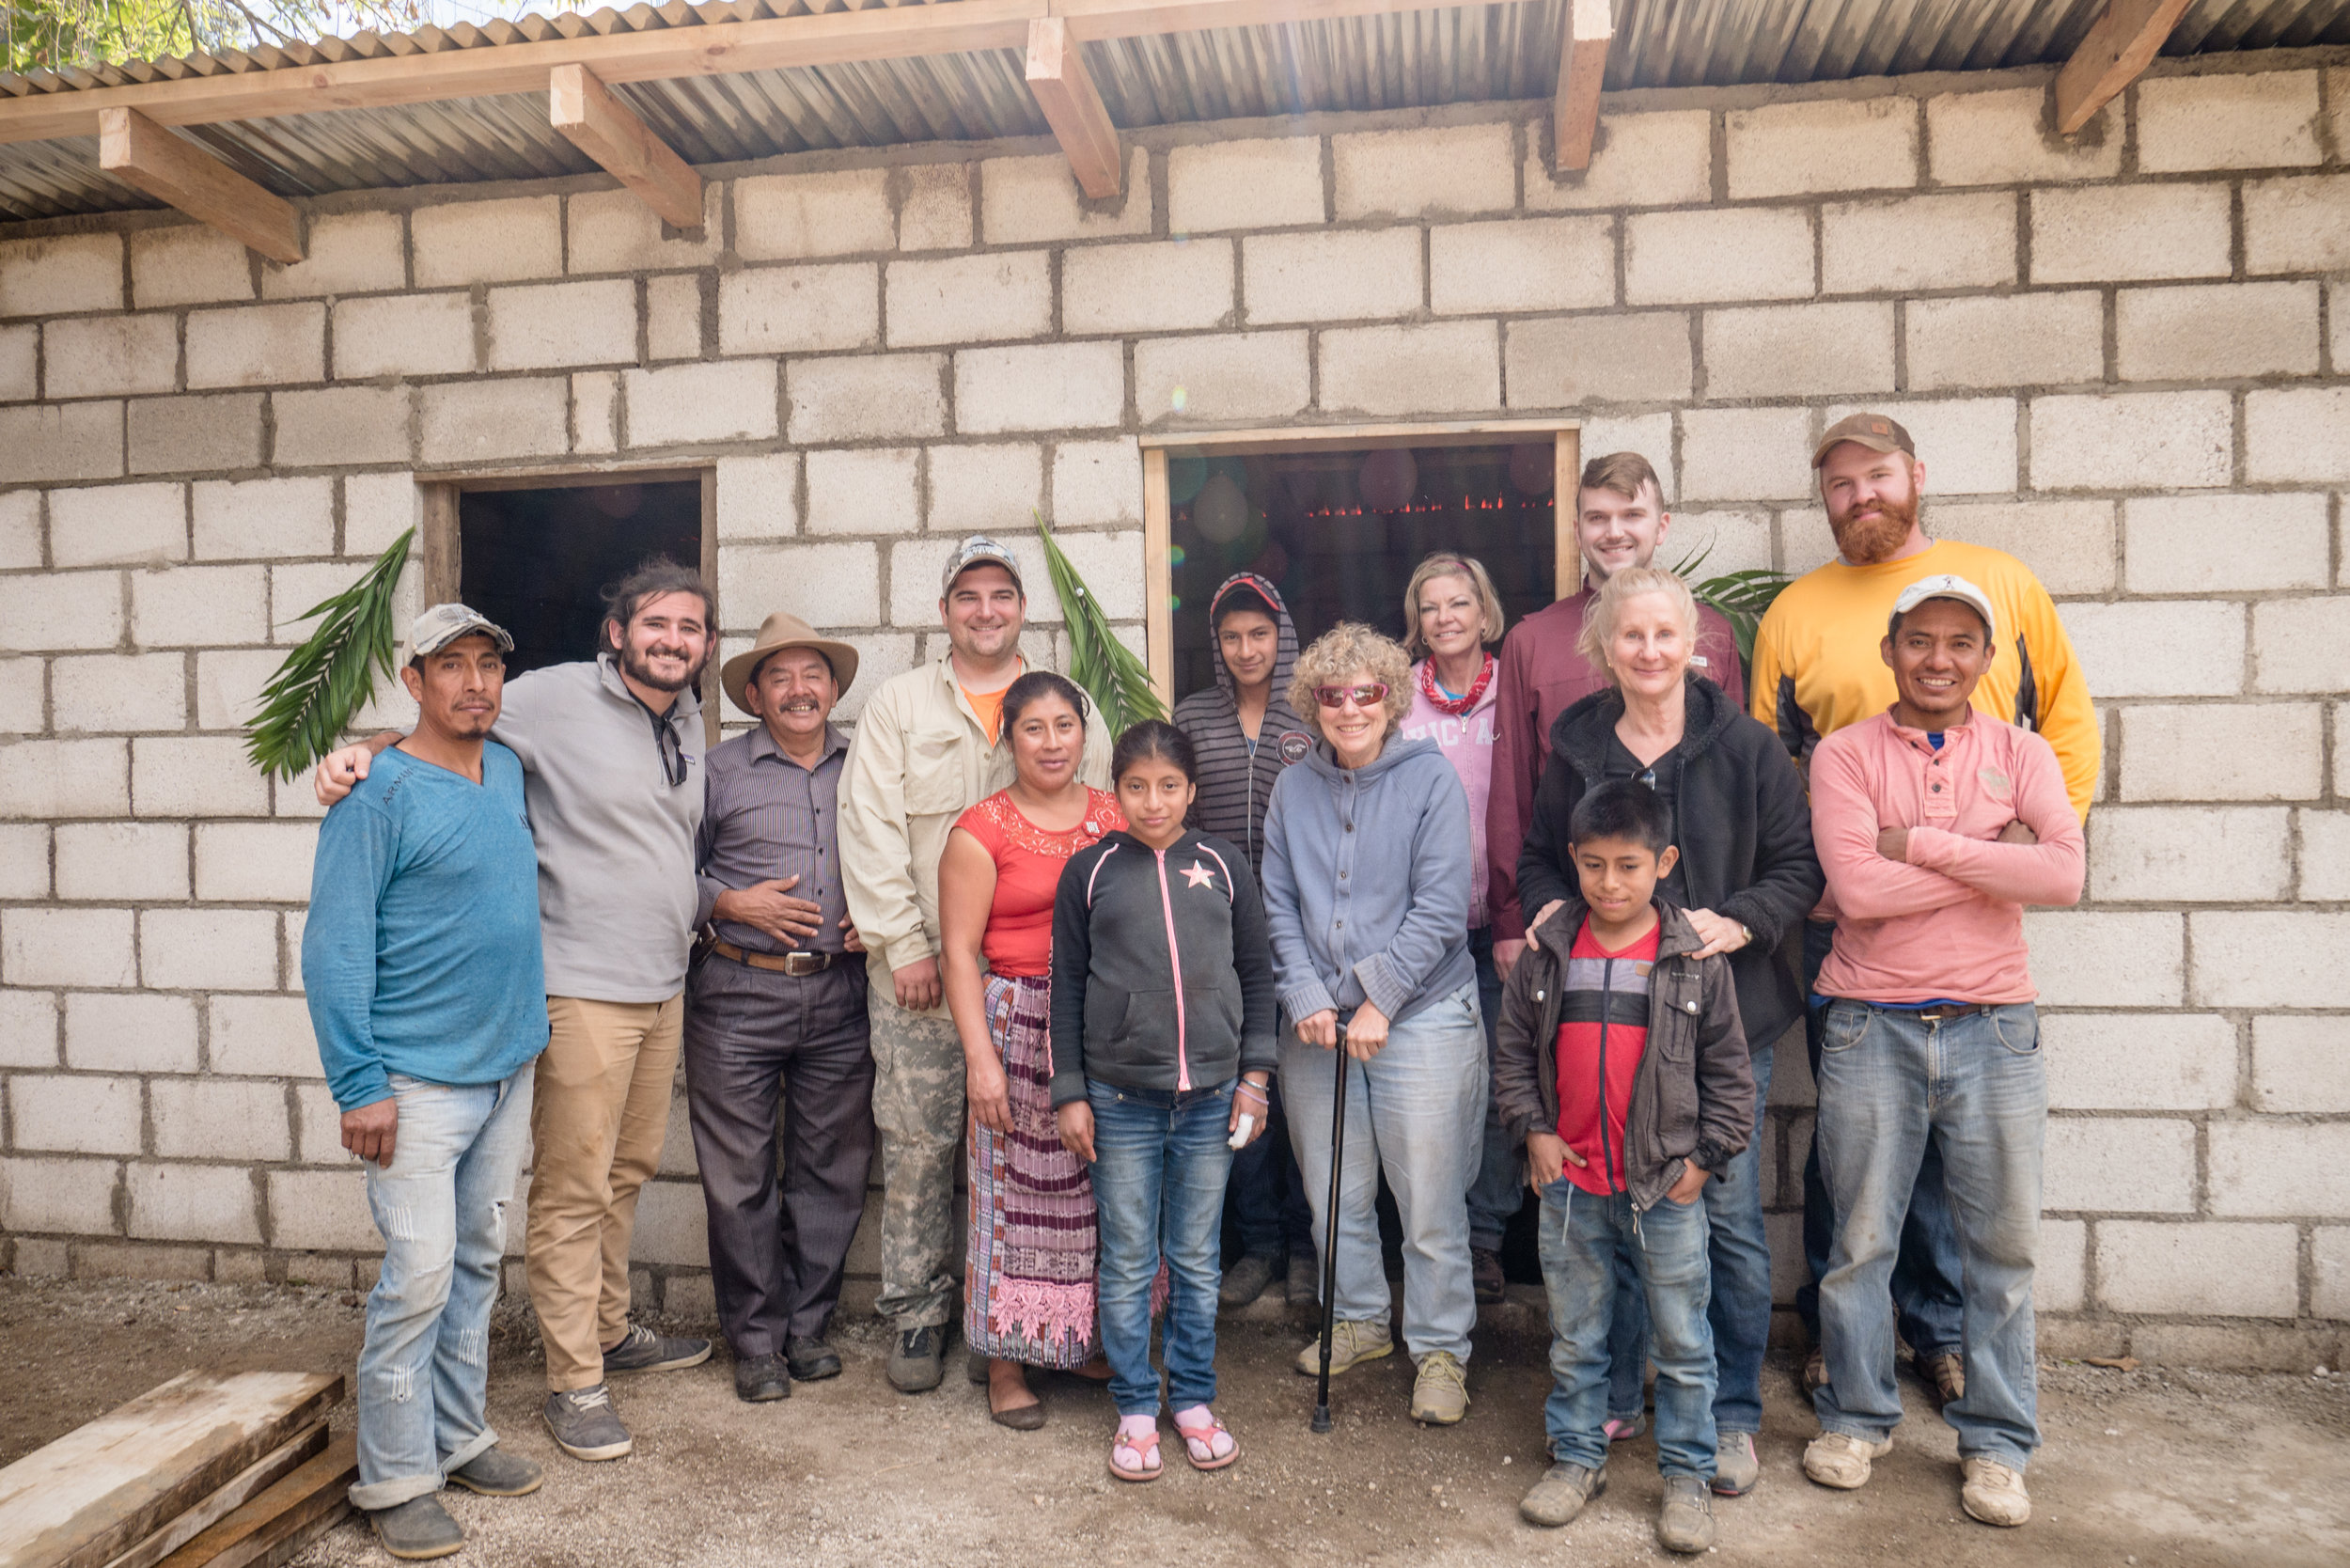 Juana and Her Daughter Pictured with the Mission Team, Teri, and Others